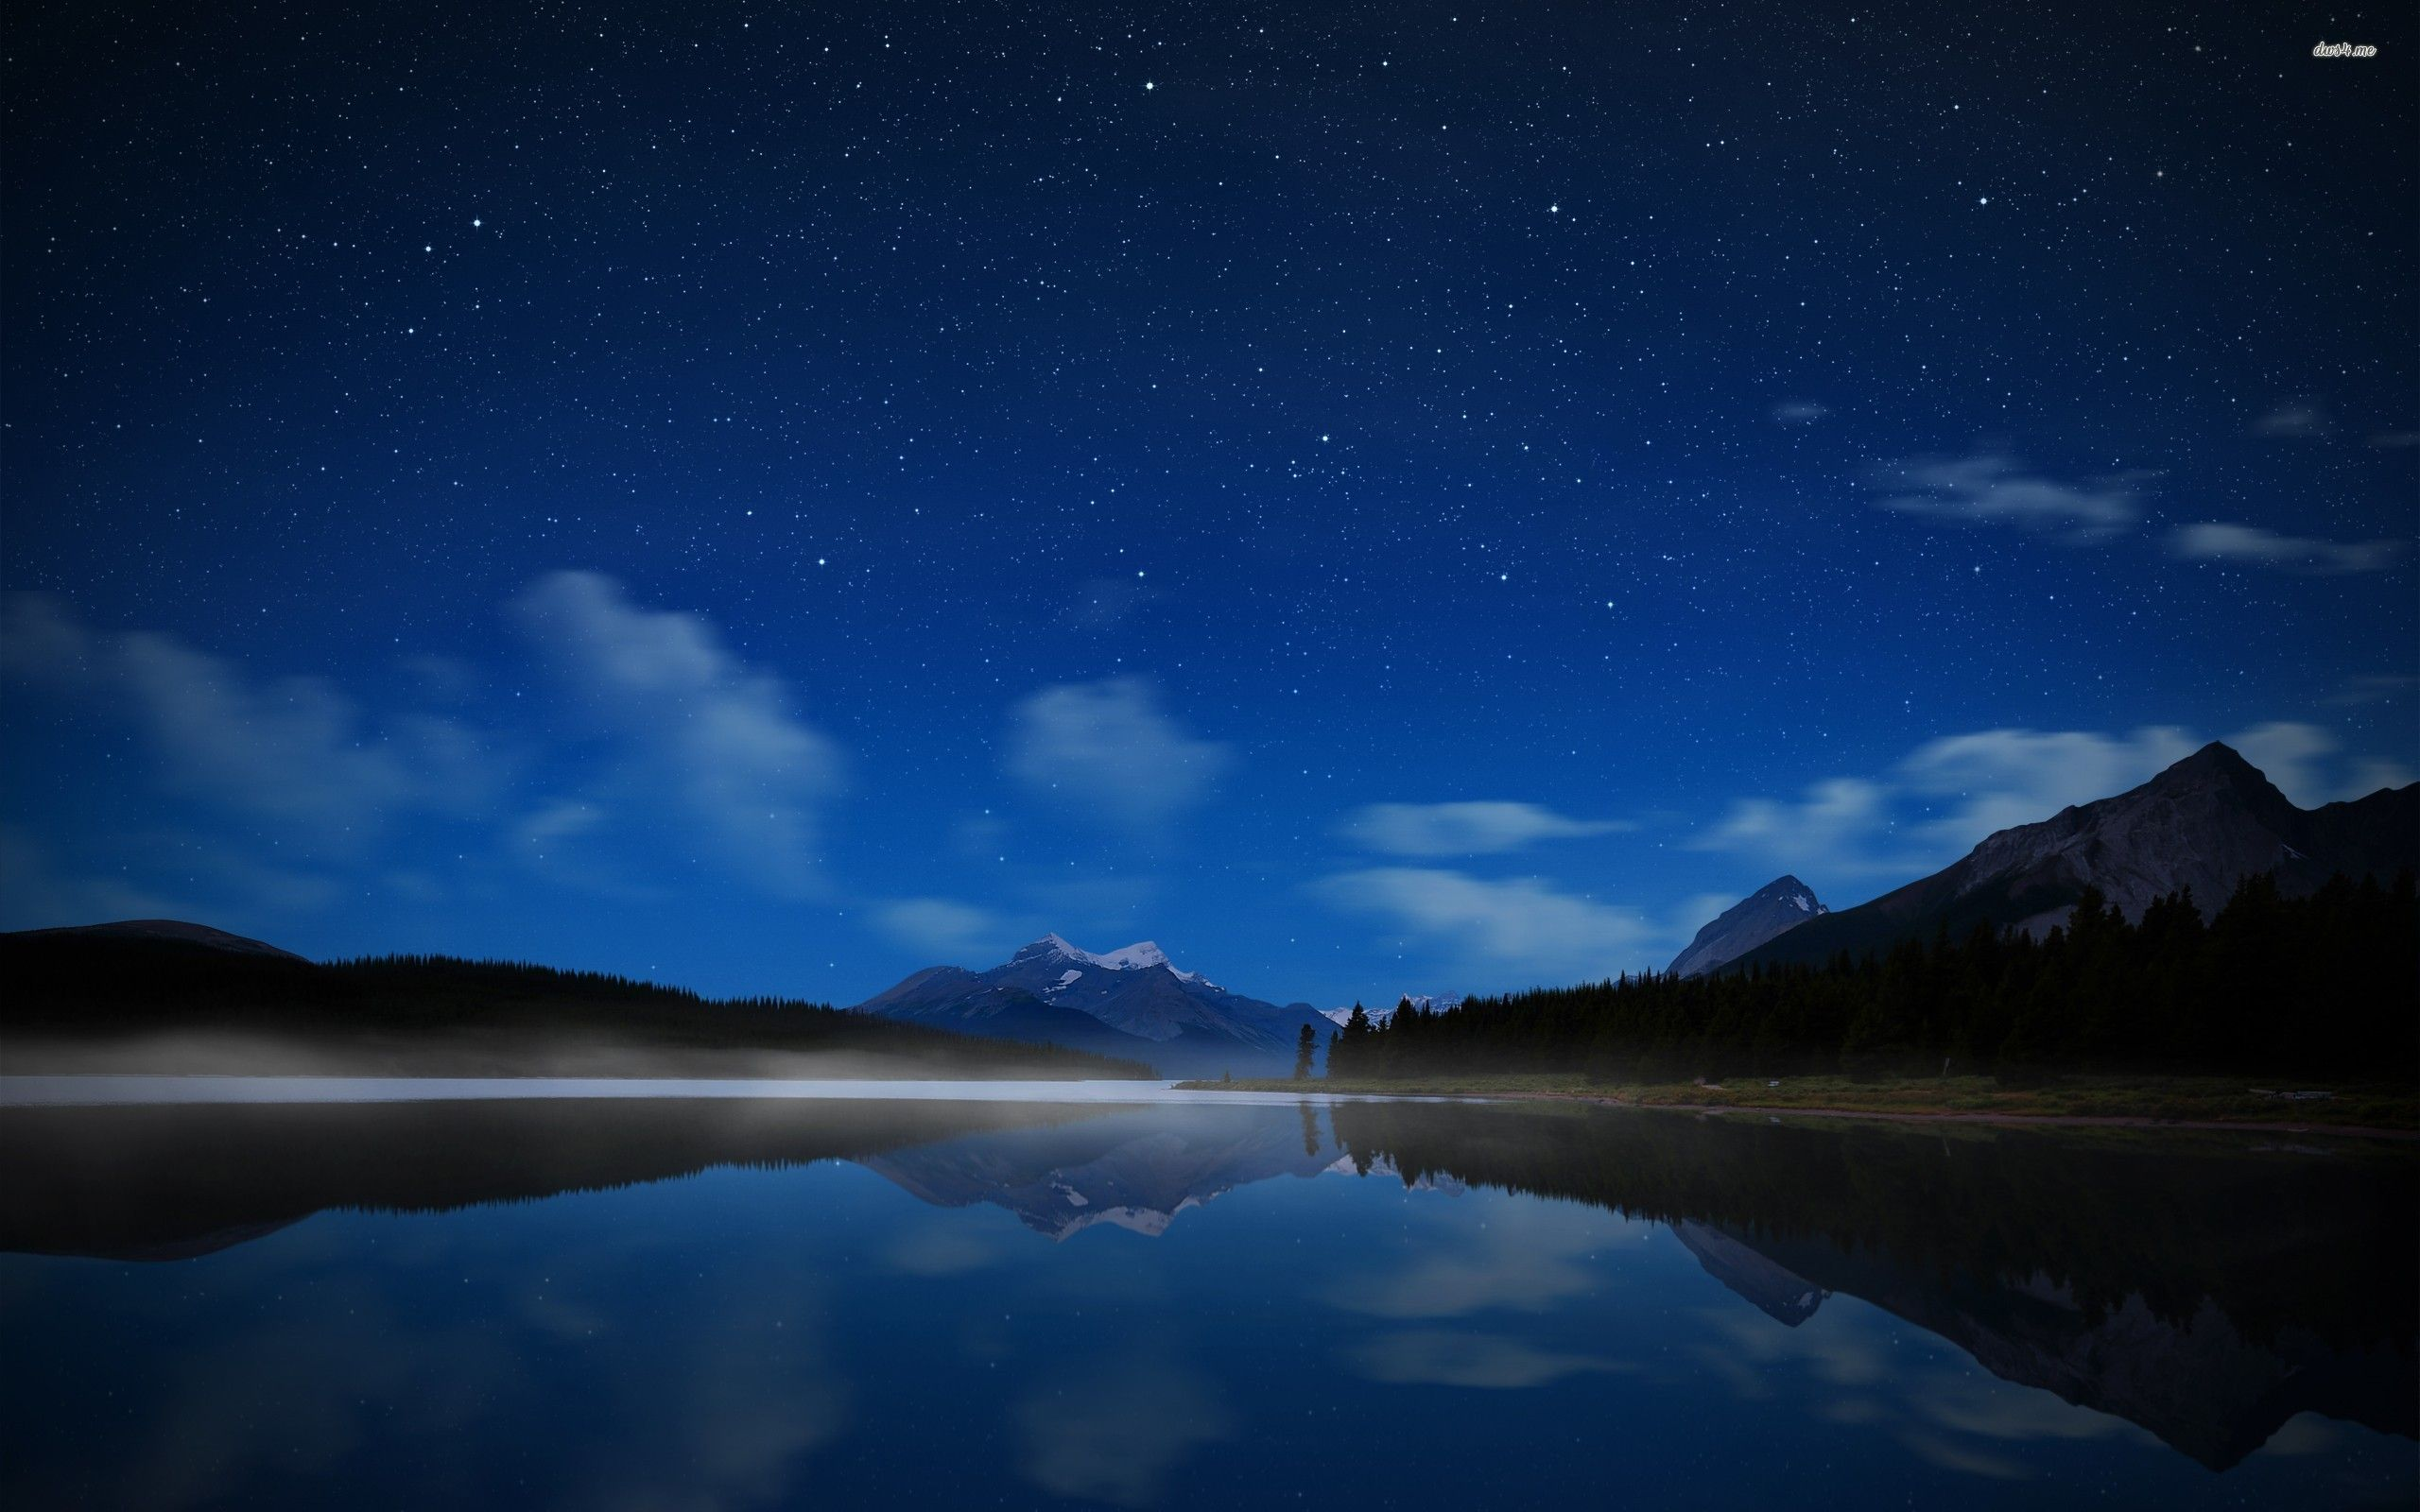 Best Wallpaper Night Blue - blue-night-sky-wallpaper-14  Collection.jpg